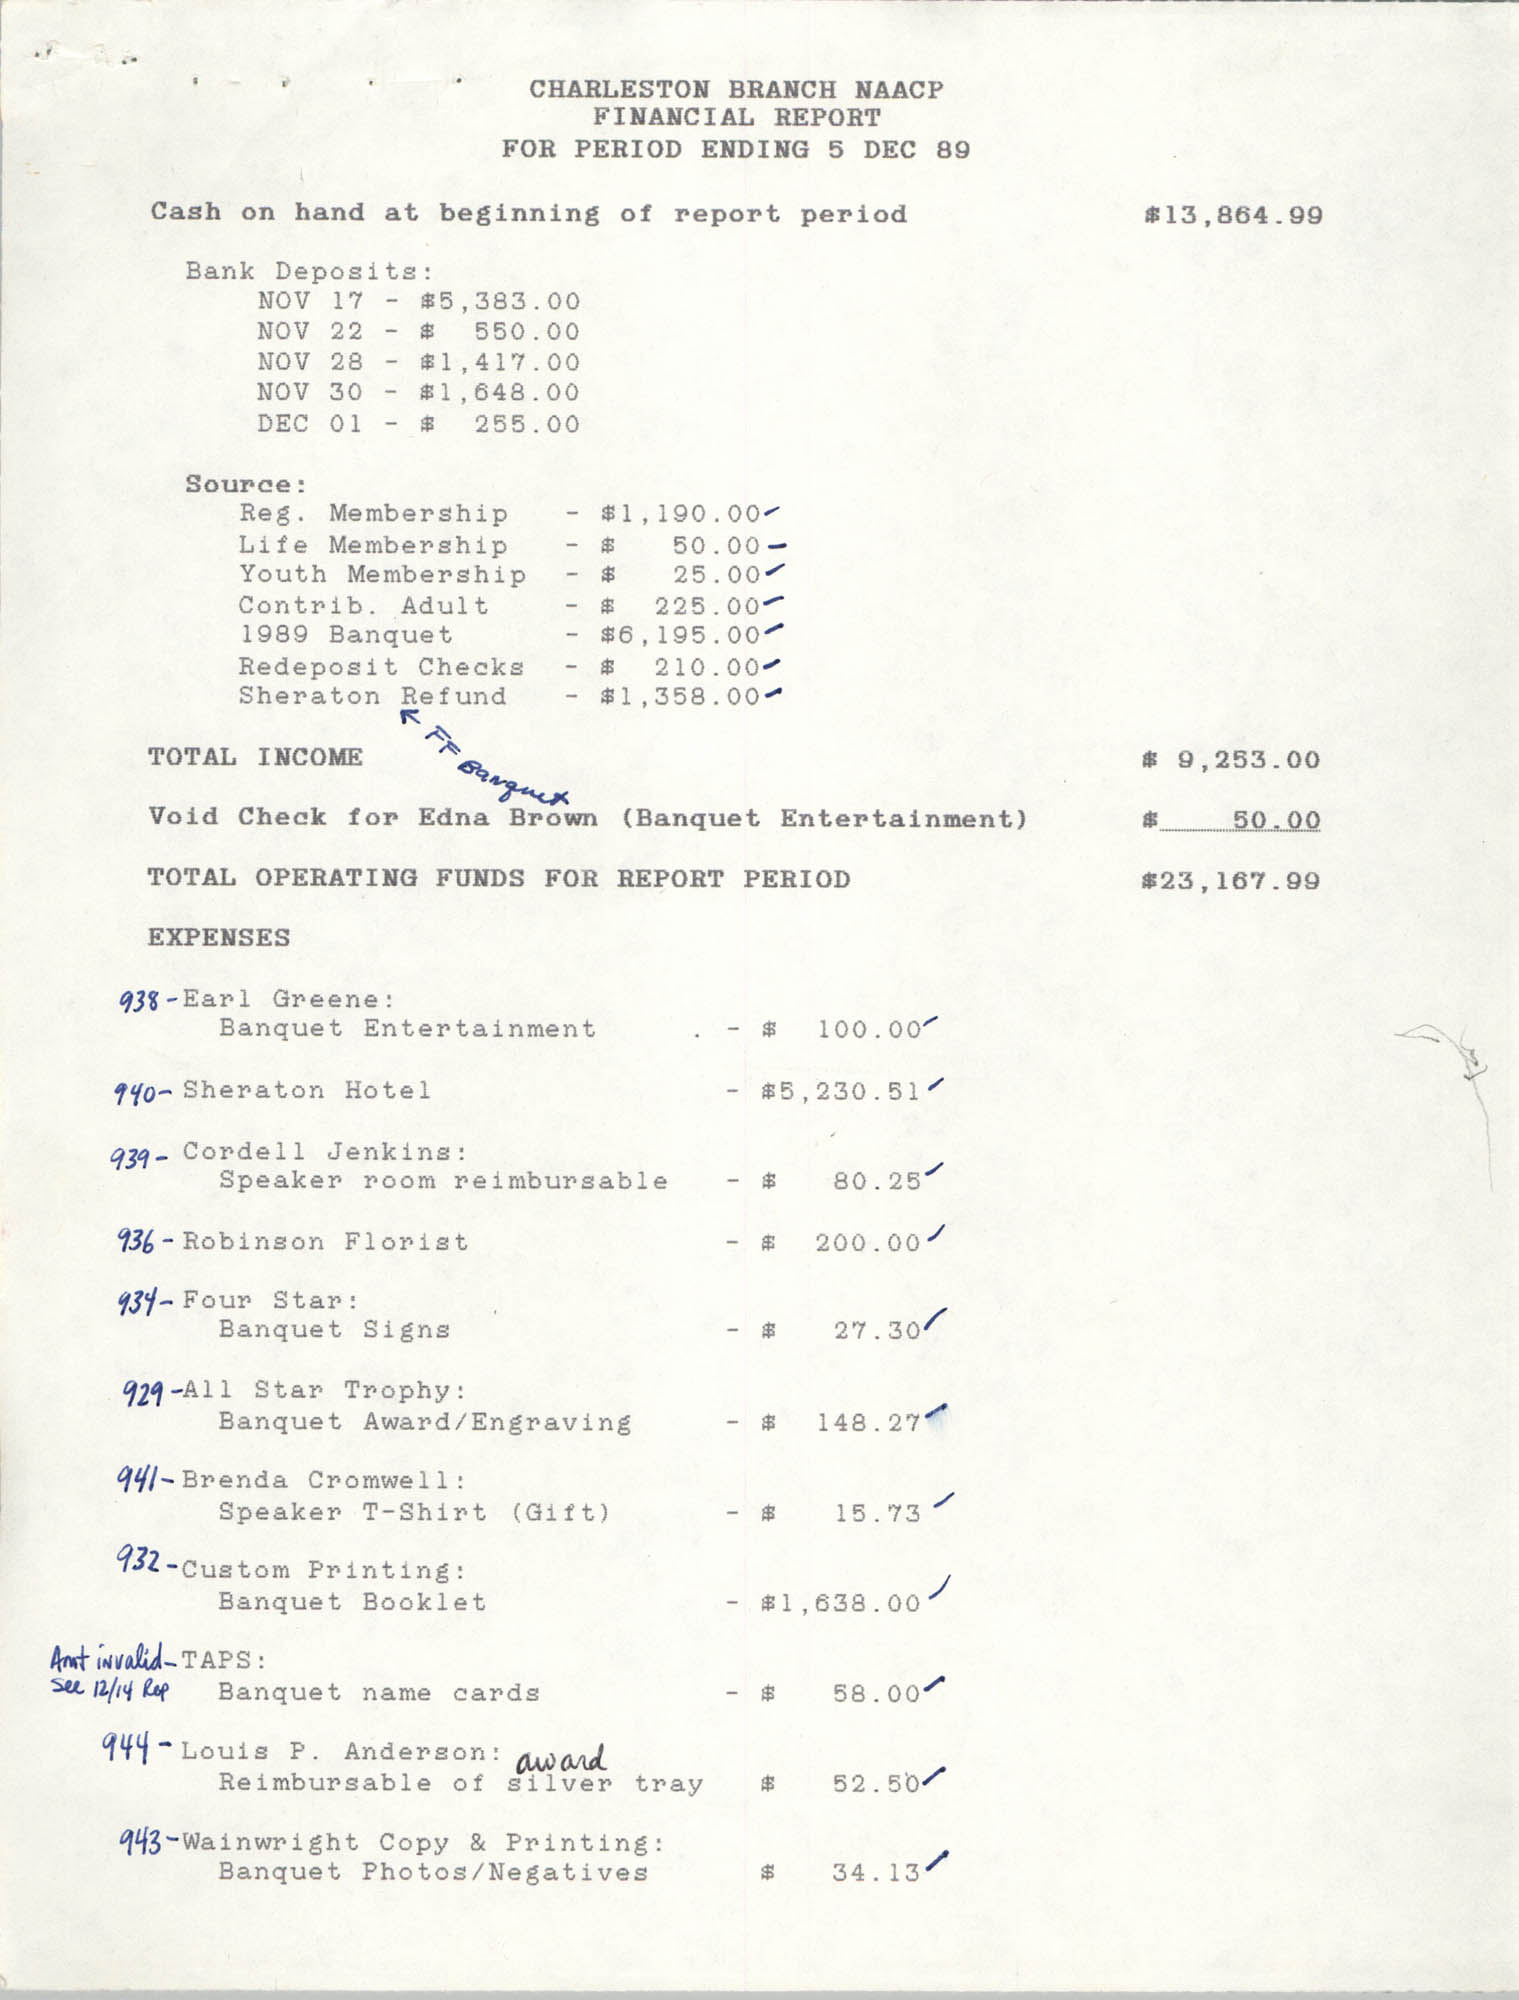 Charleston Branch of the NAACP Financial Report, December 5, 1989